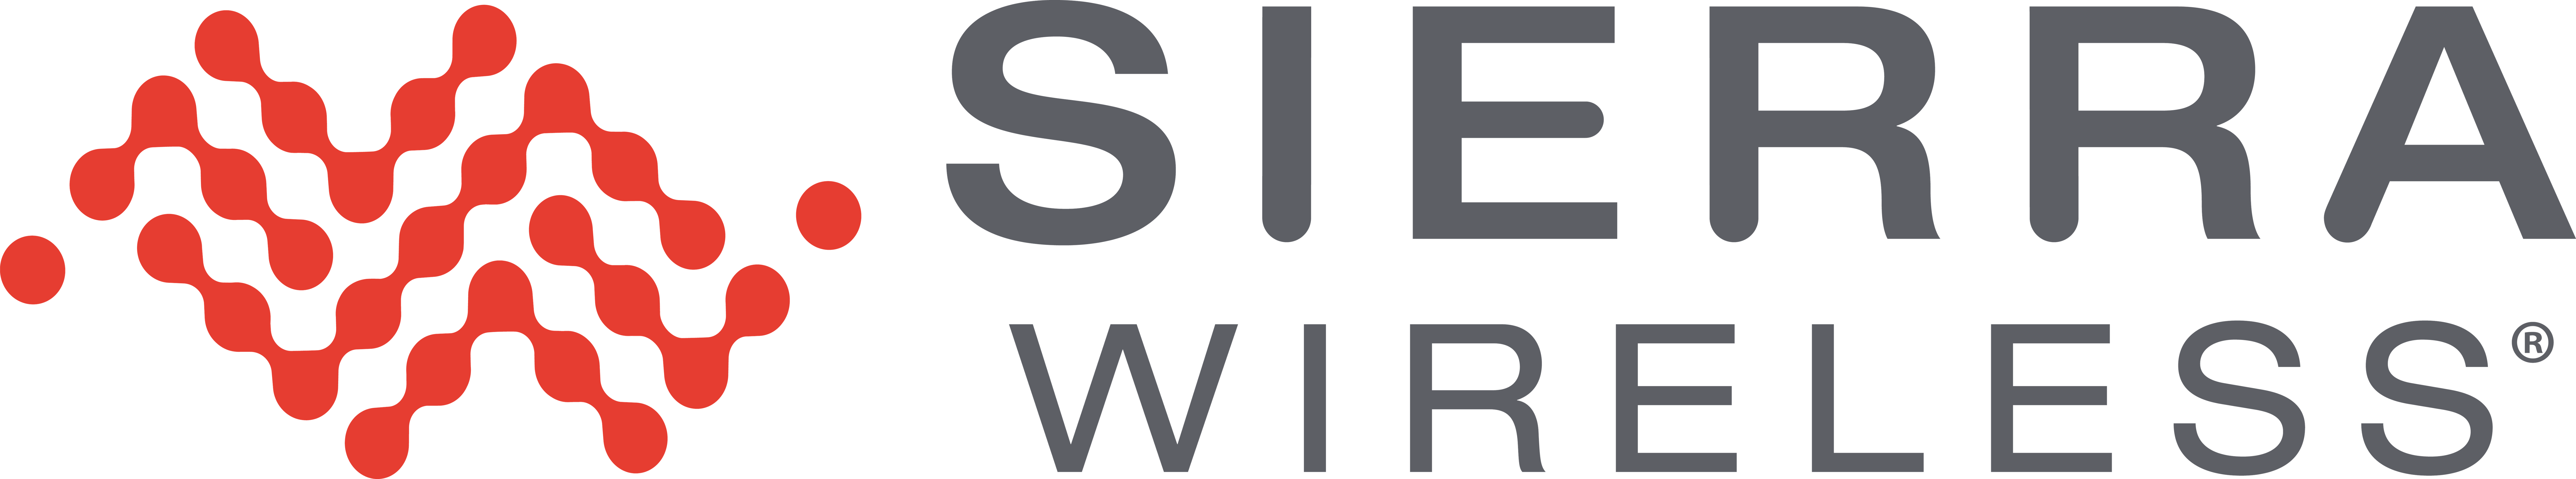 Sierra Wireless Airlink